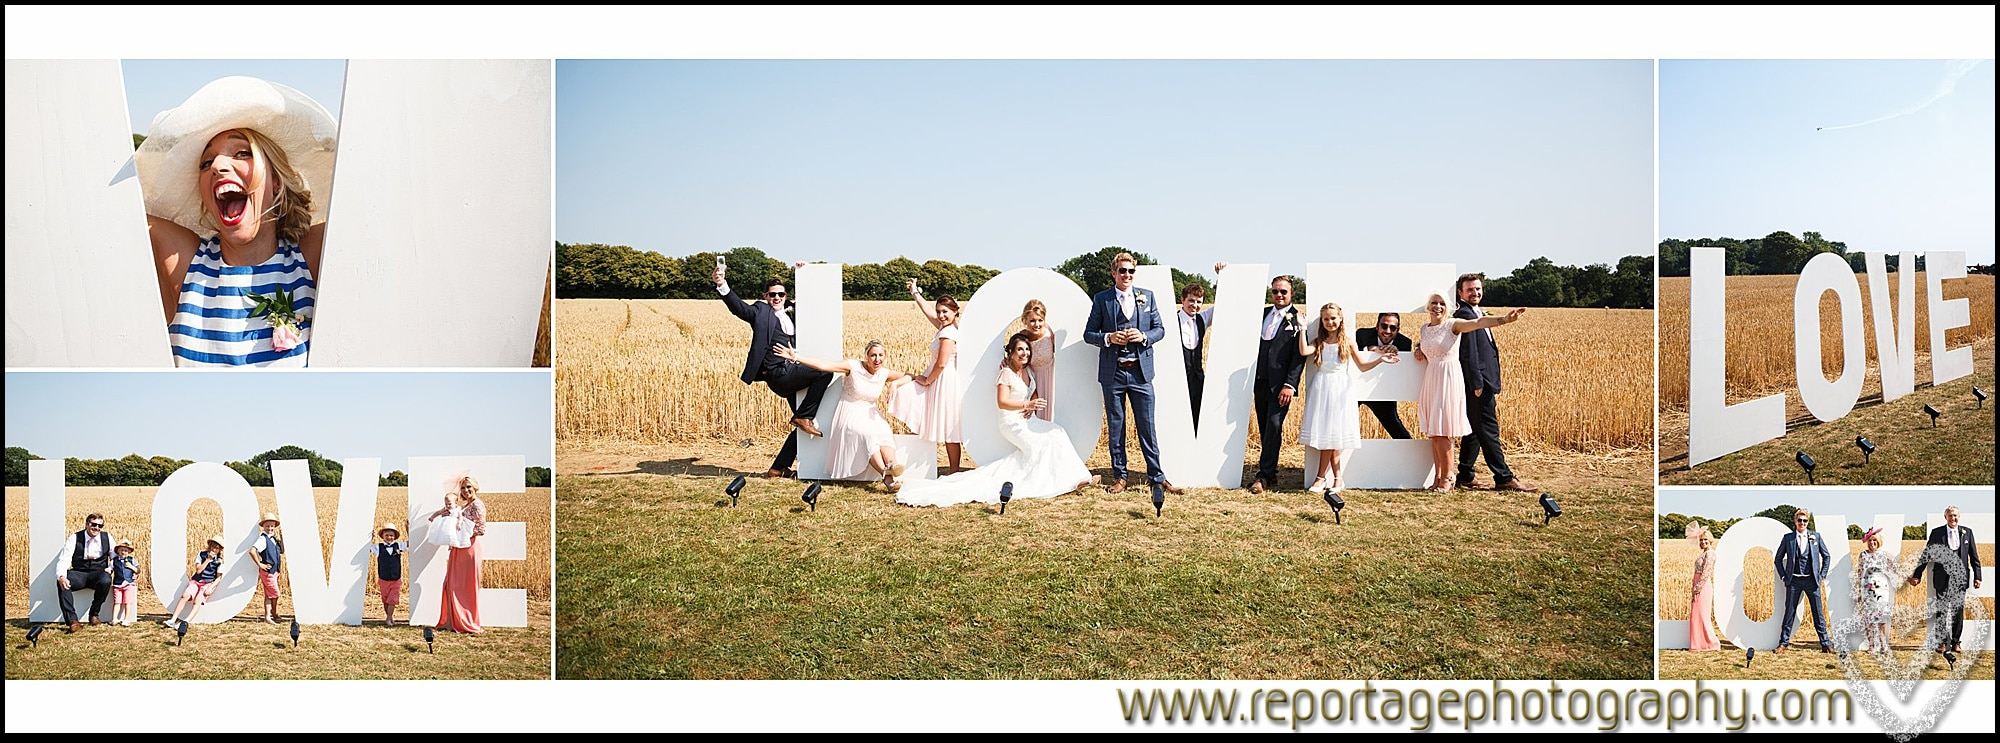 Essex wedding Love letters